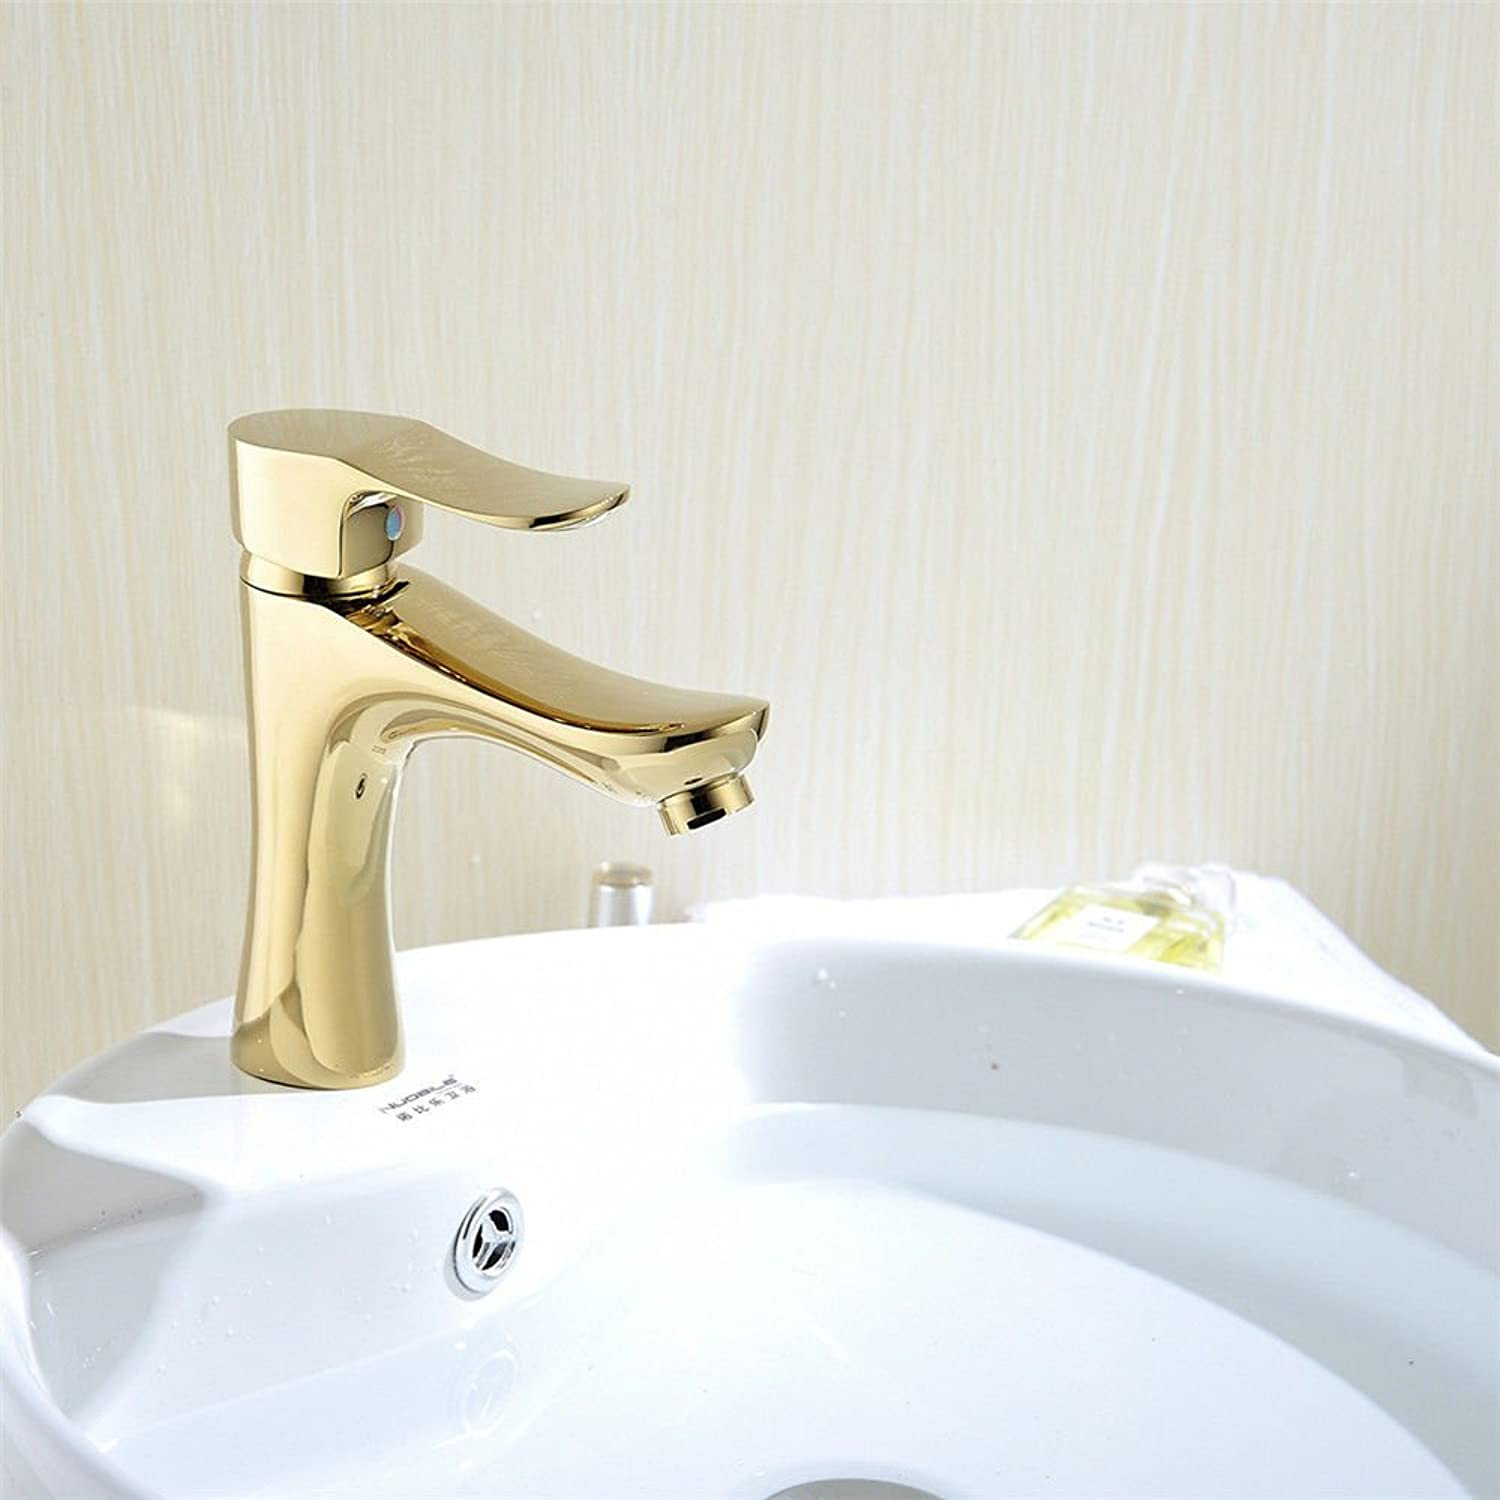 Hlluya Professional Sink Mixer Tap Kitchen Faucet The Brass chrome gold bathroom basin mixer mixing of hot and cold water faucets, gold